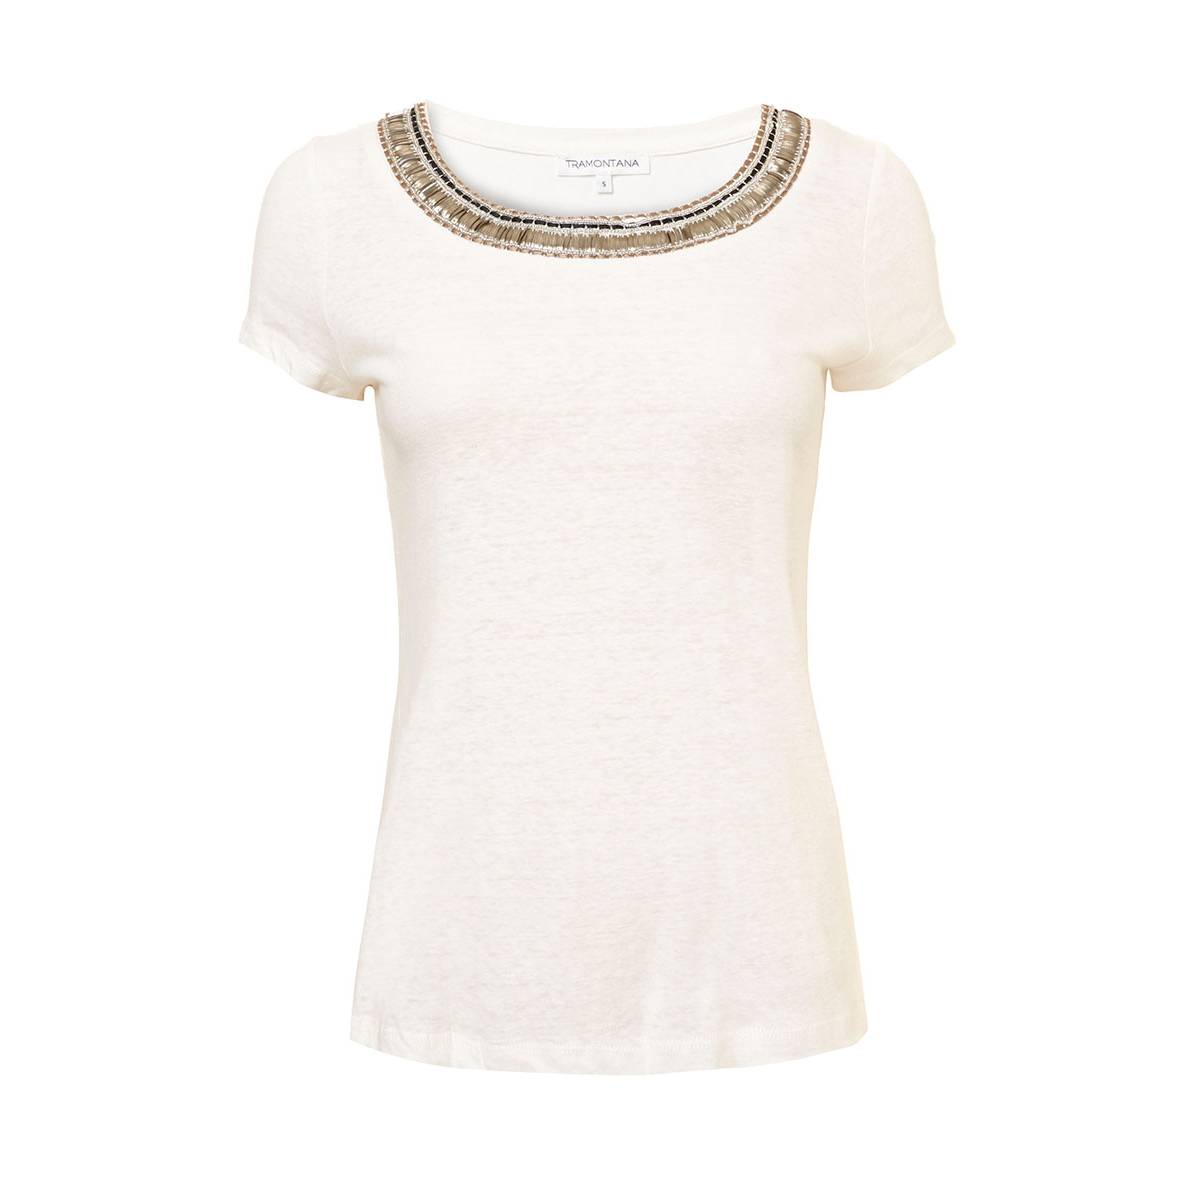 Tramontana Q03-83-402 T-SHIRT LACE BACK Wit